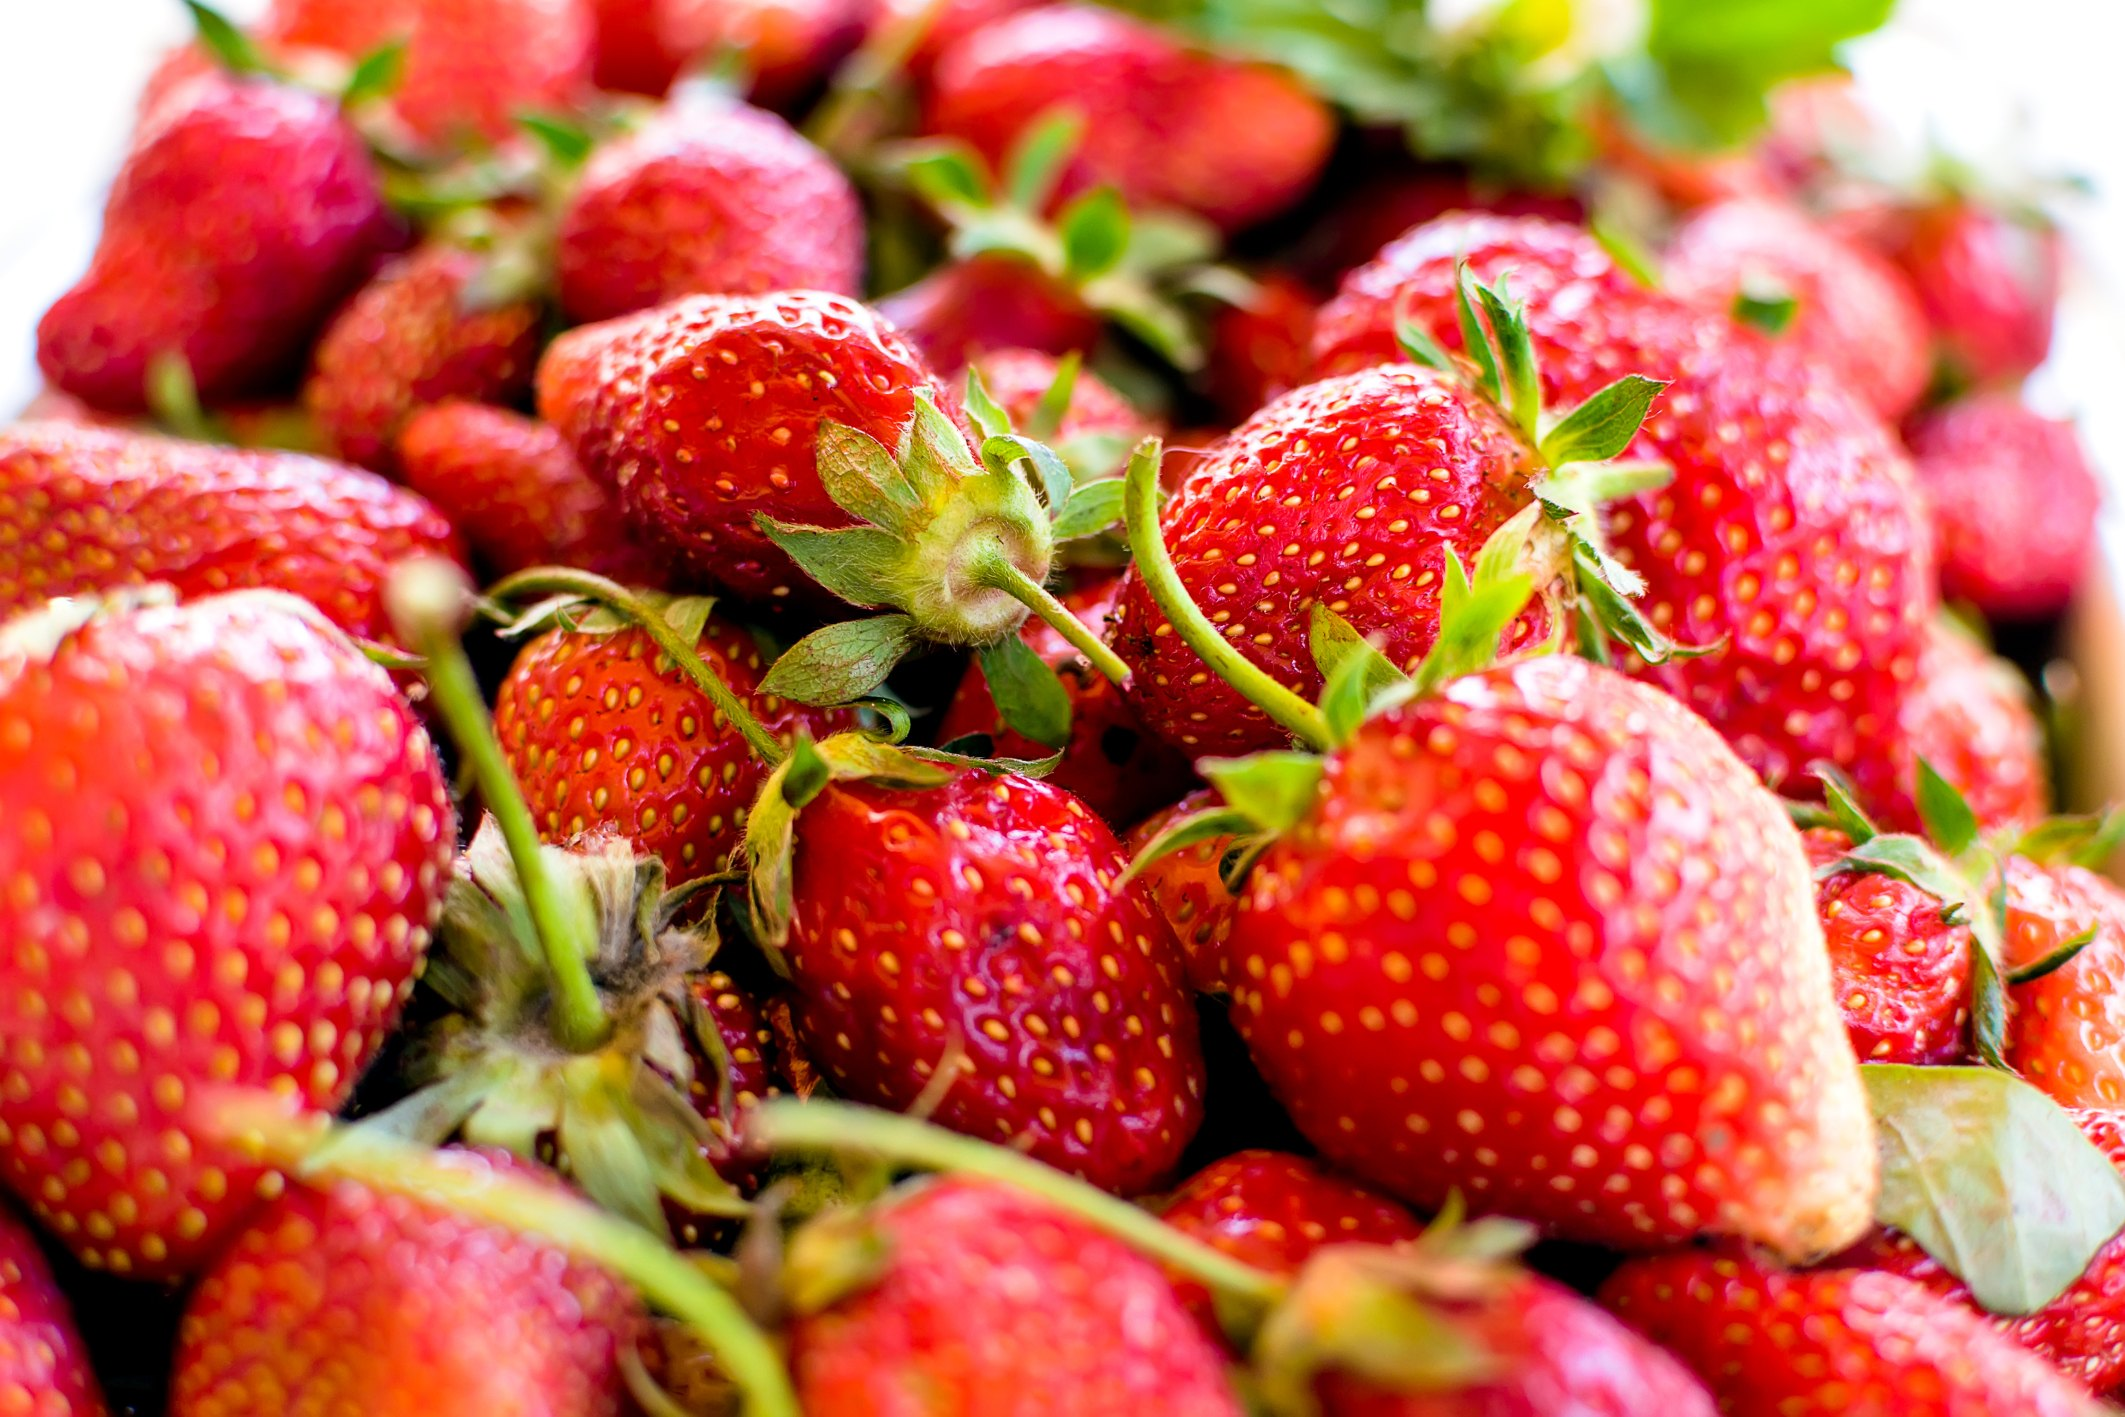 Strawberries Are a Healthy Snack but Are They Low in Calories?